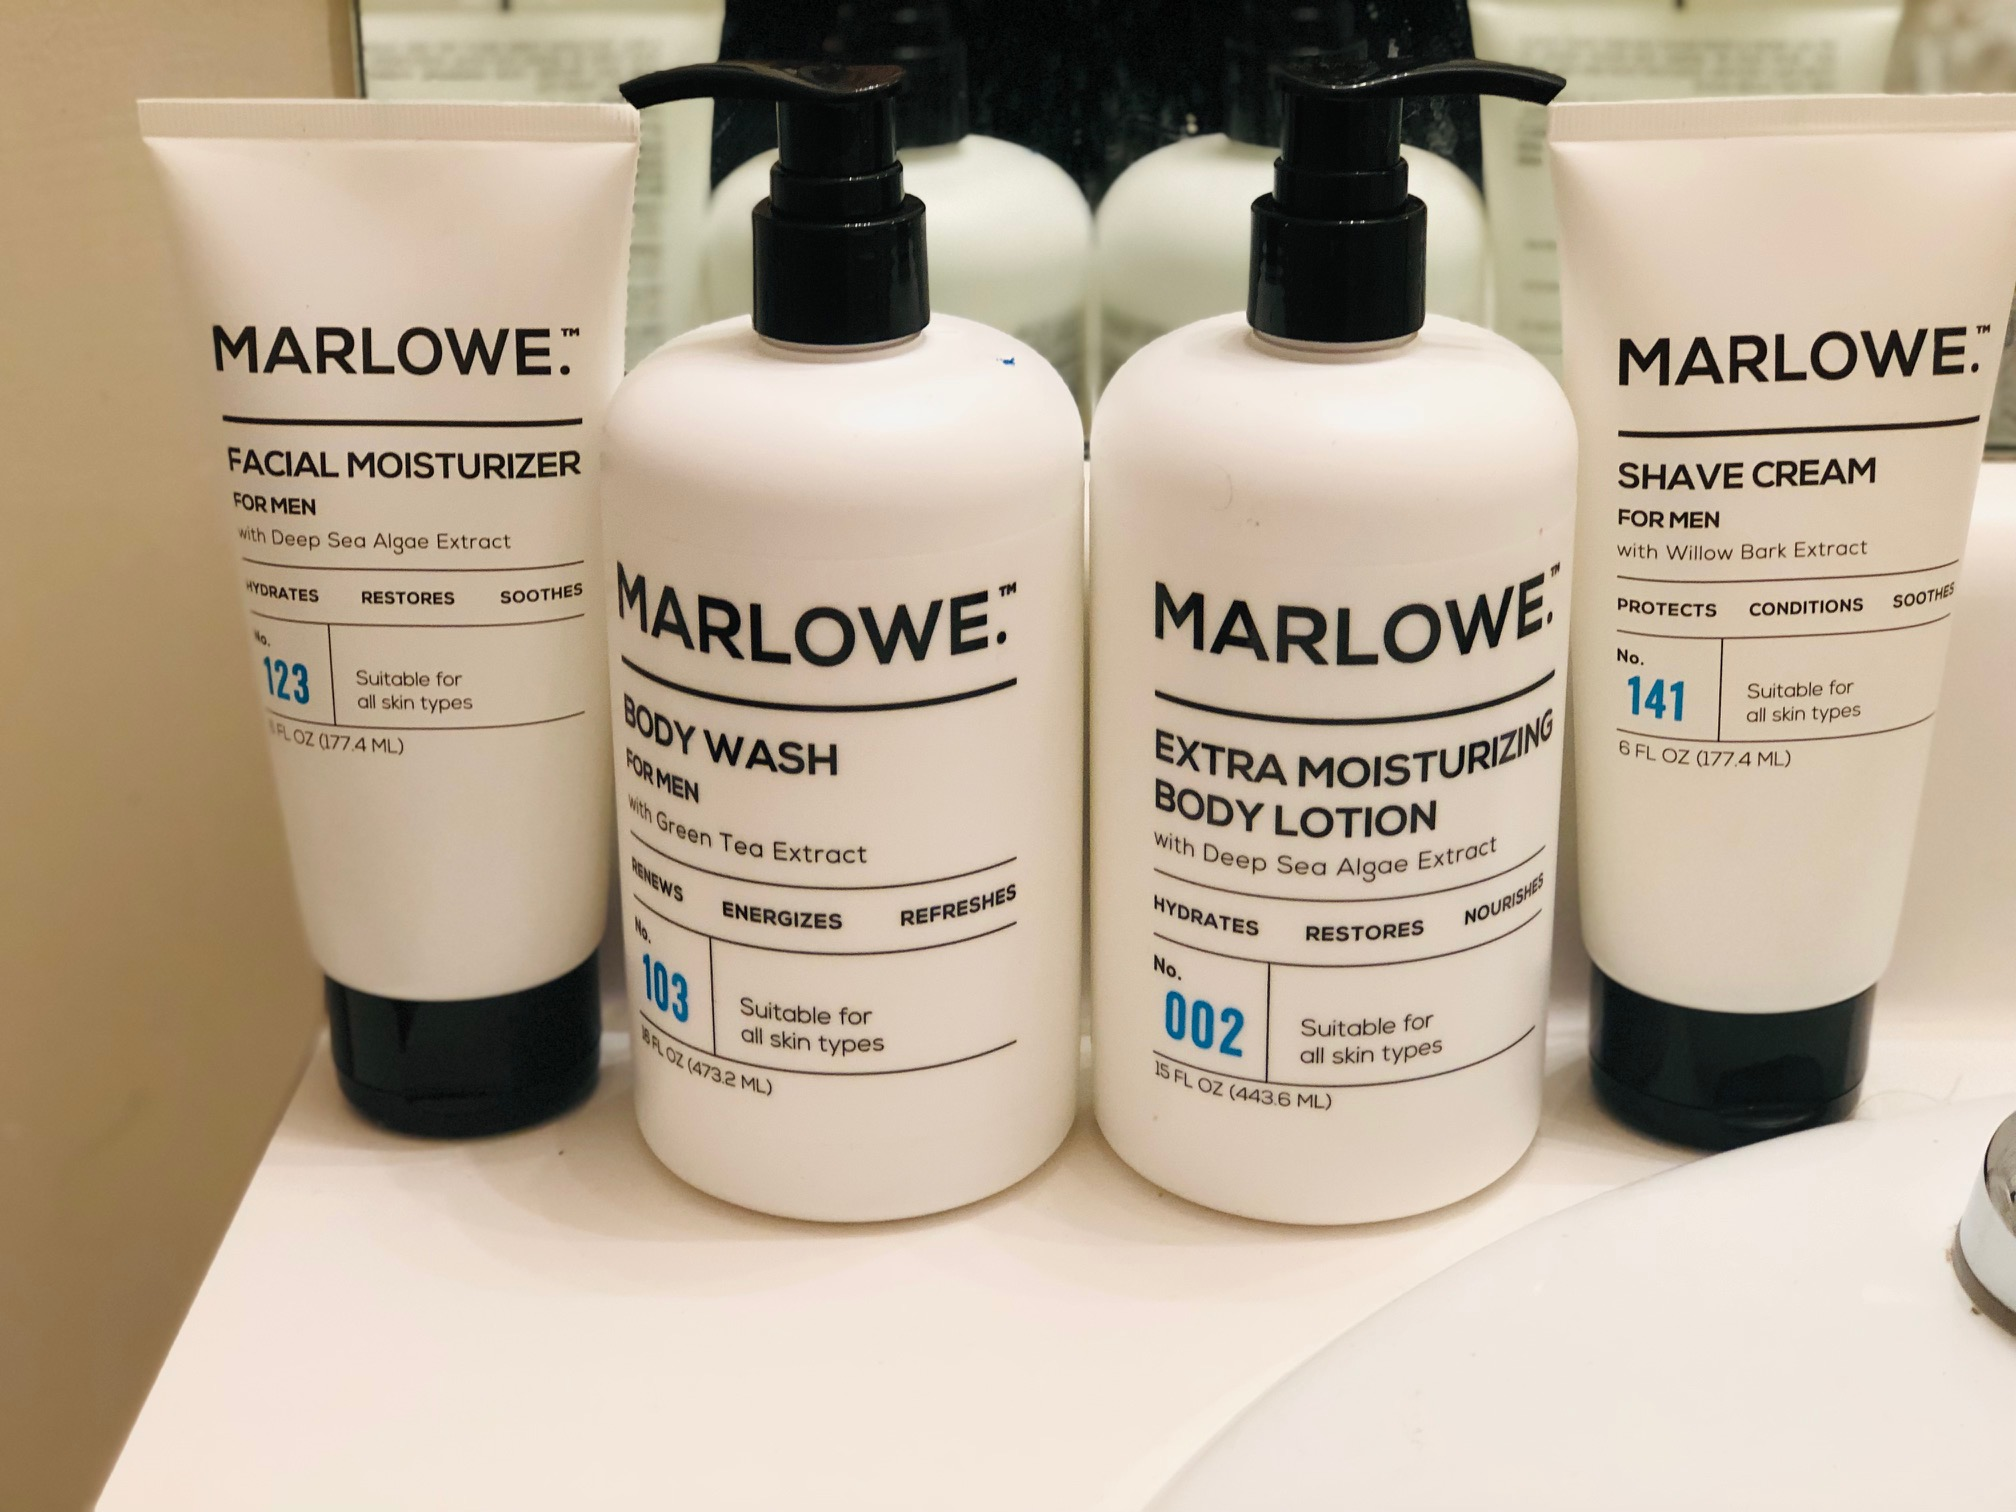 4 Marlowe Products That Guys Should Try Out